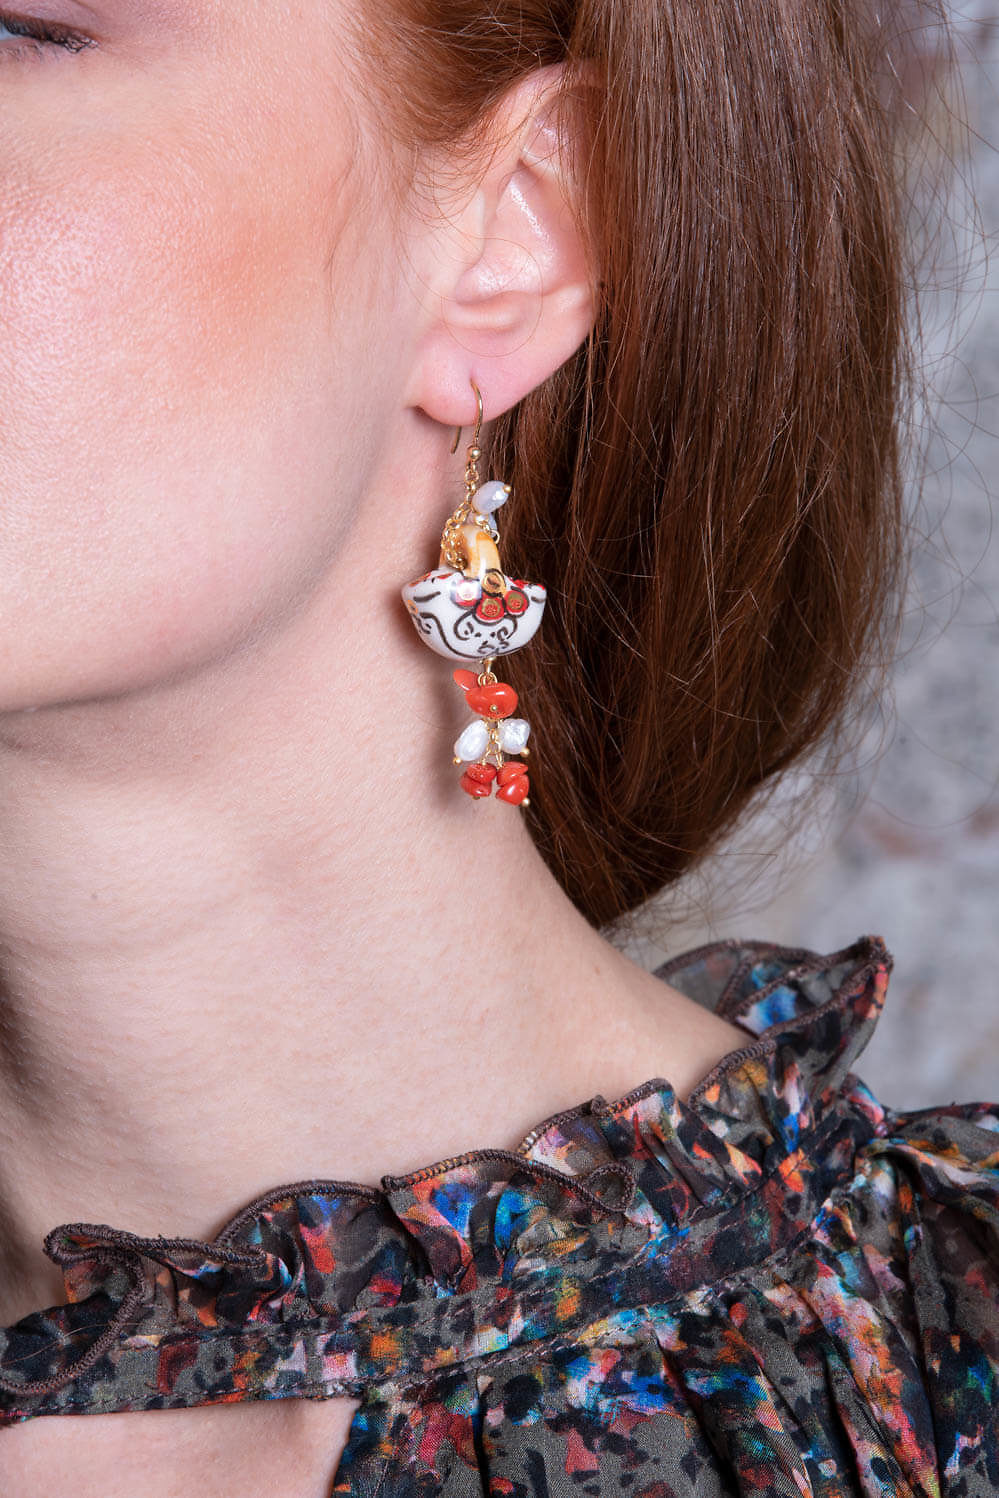 earrings with pearls, corals and painted ceramics PETRA